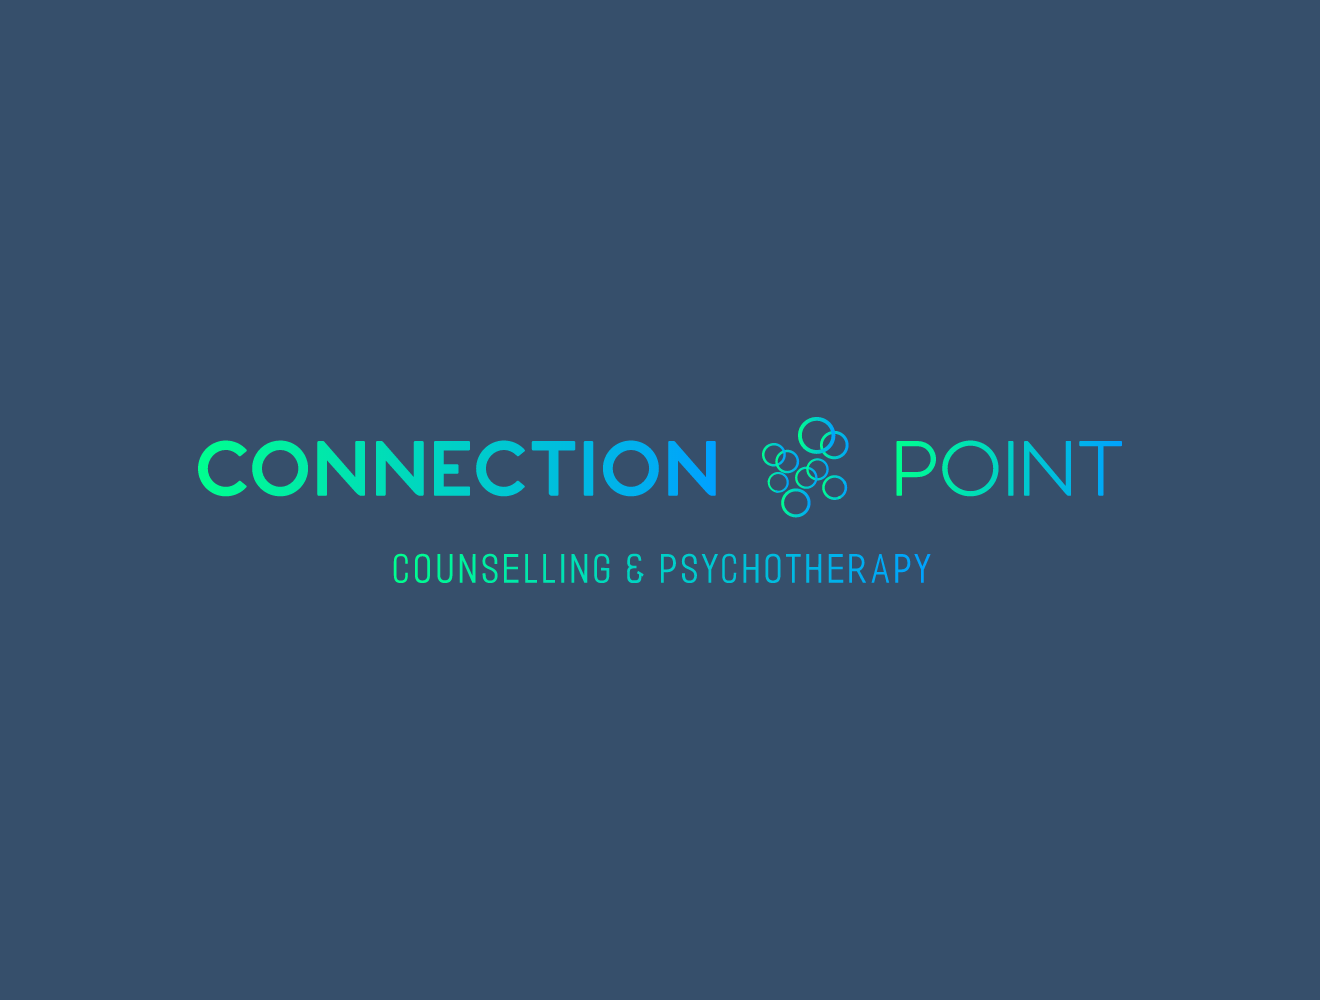 Connection Point Counselling + Psychotherapy